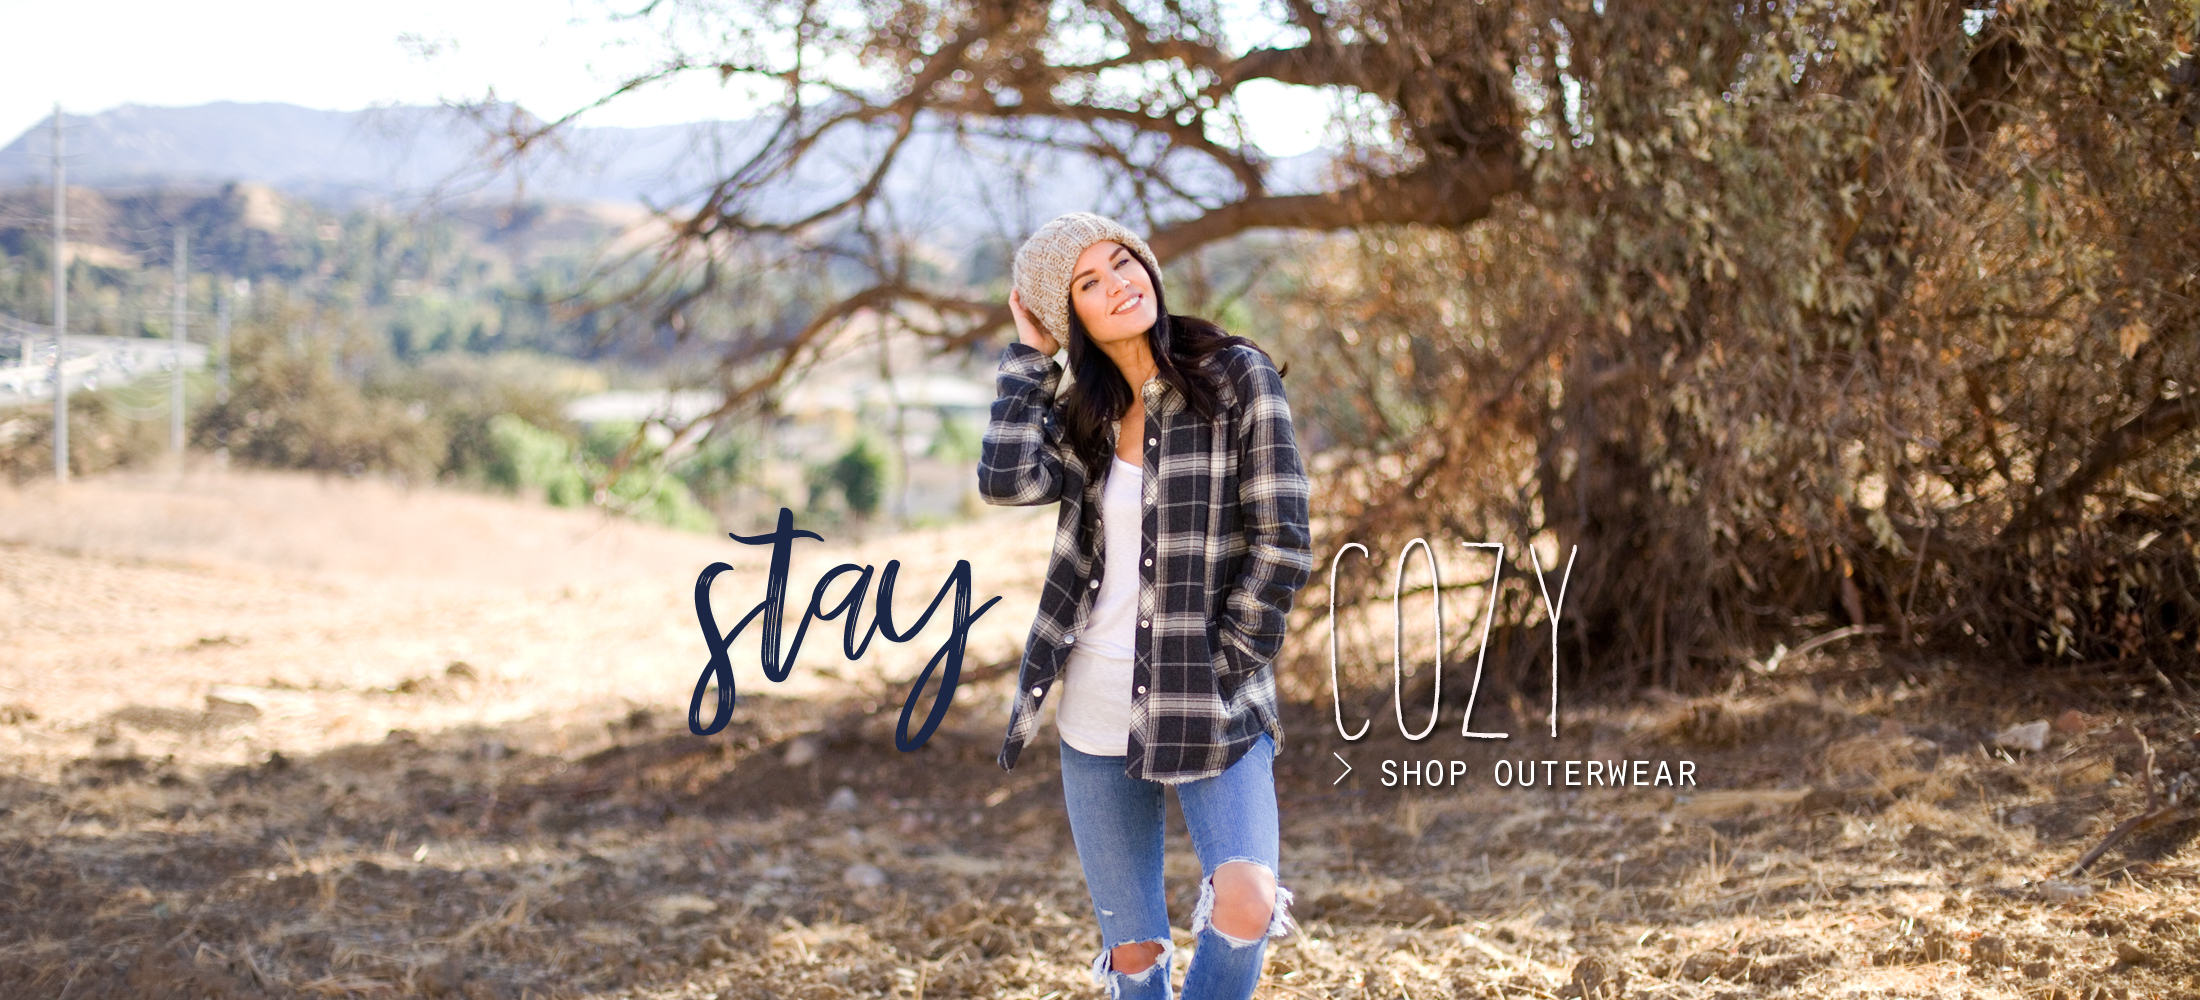 stay cozy > SHOP OUTERWEAR